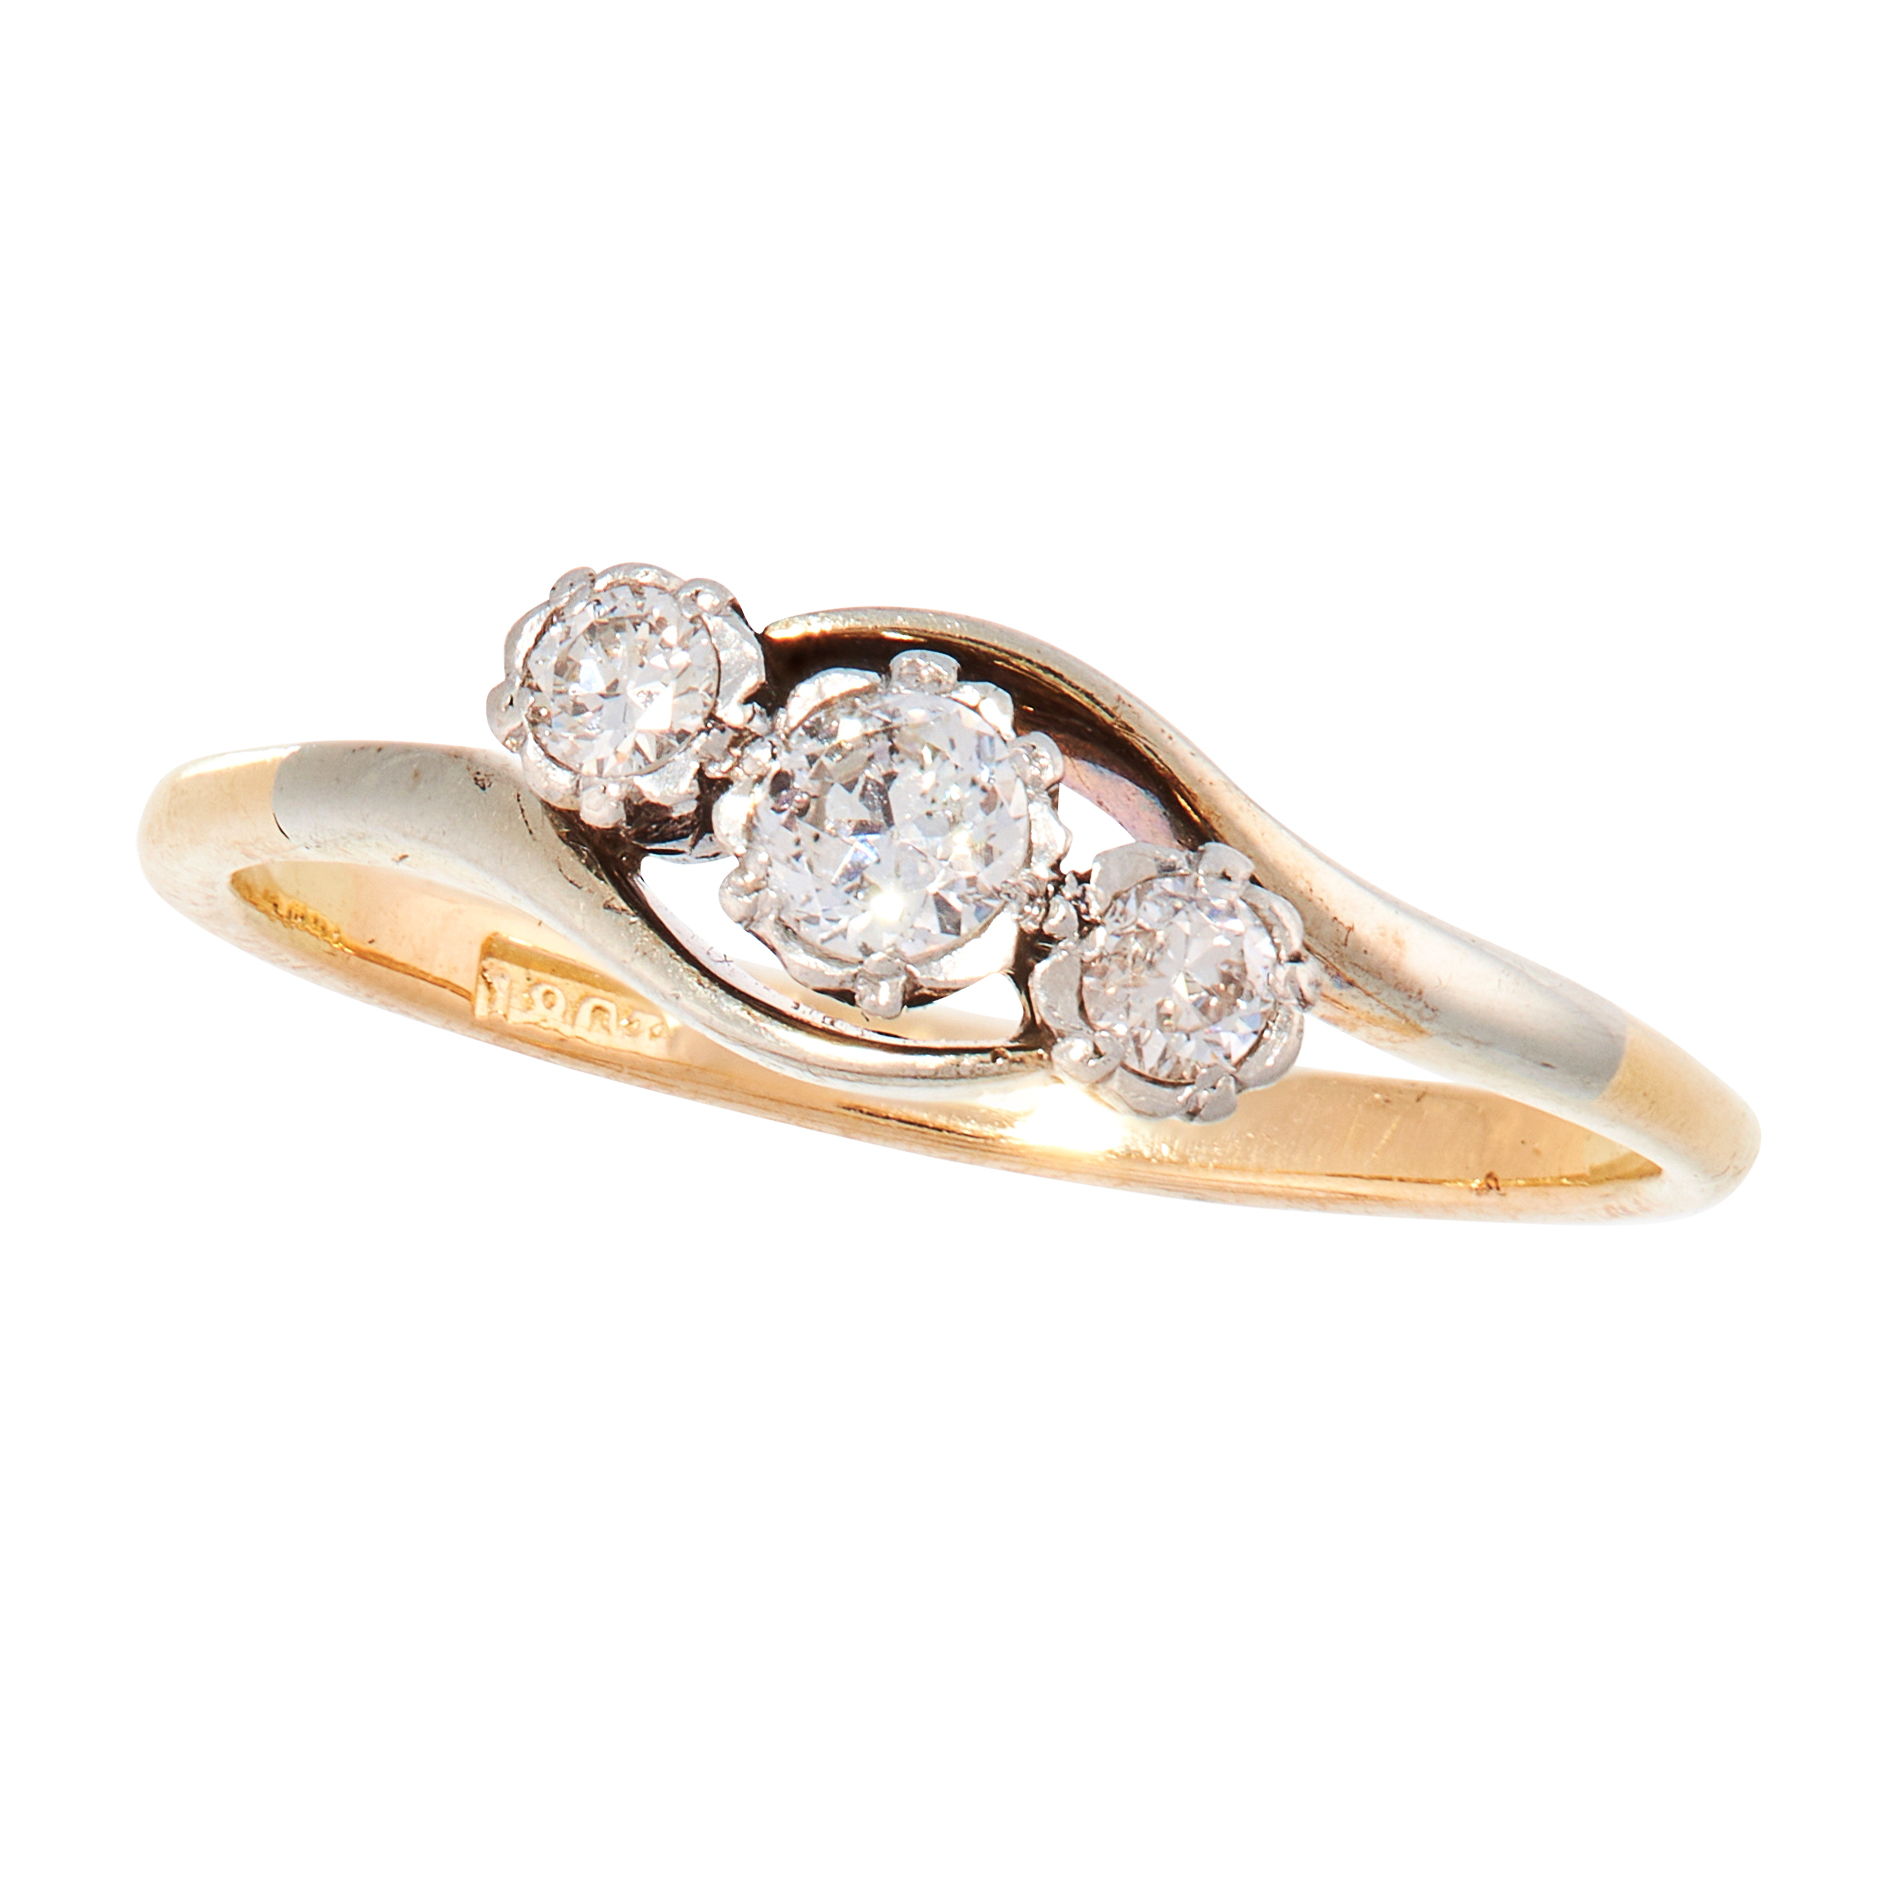 A DIAMOND DRESS RING, EARLY 20TH CENTURY in 18ct yellow gold and platinum set with a trio of